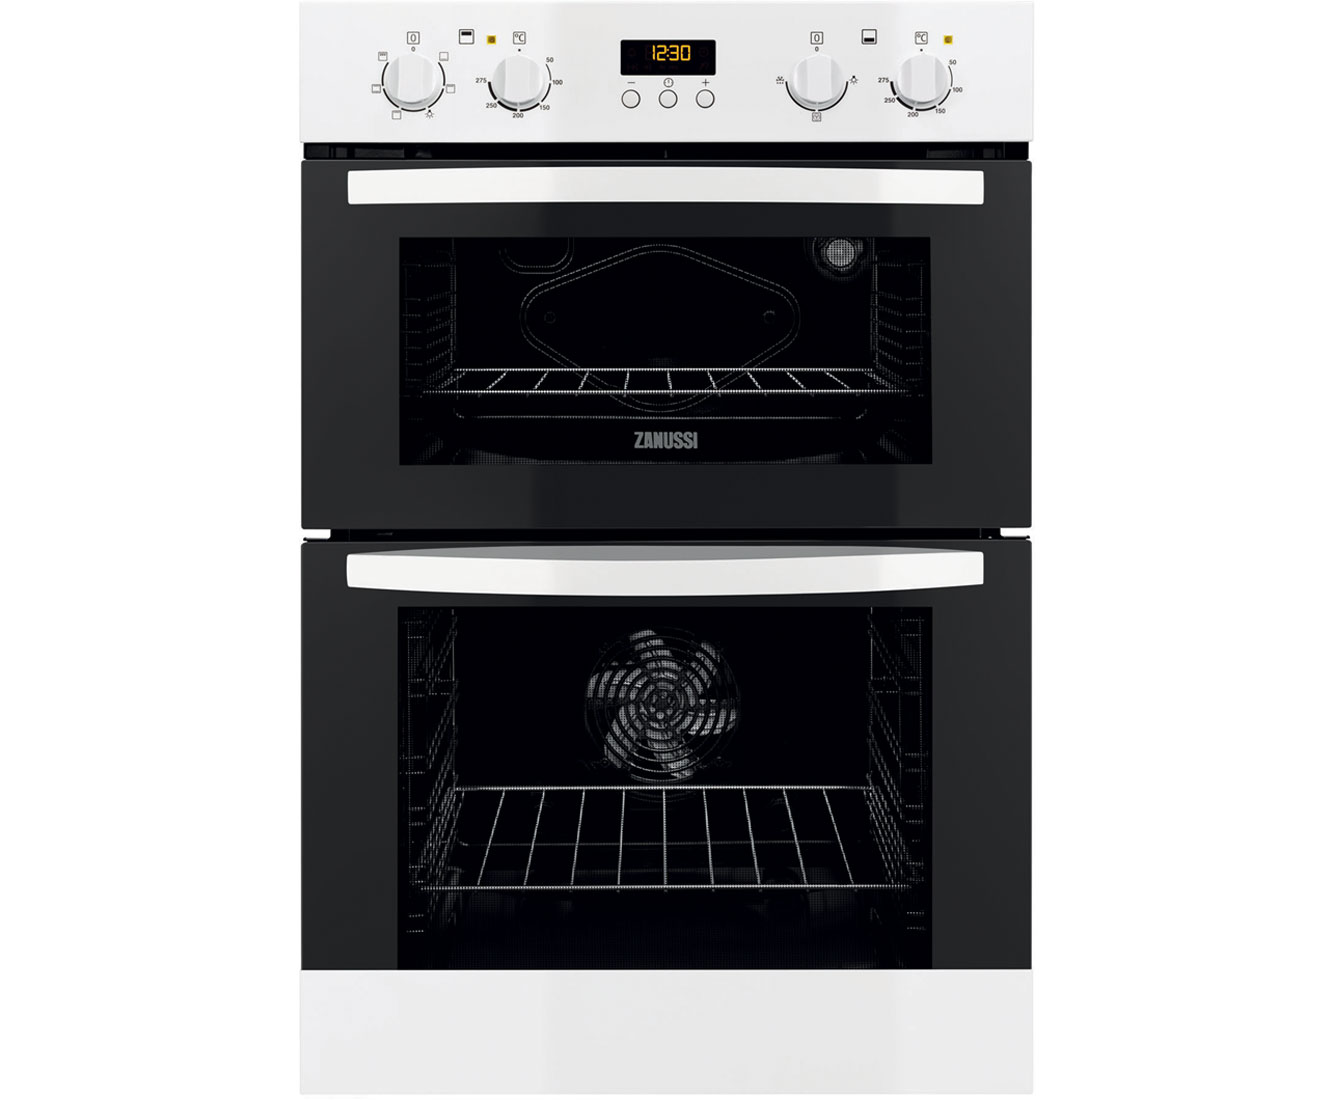 Zanussi ZOD35511WK Integrated Double Oven in White